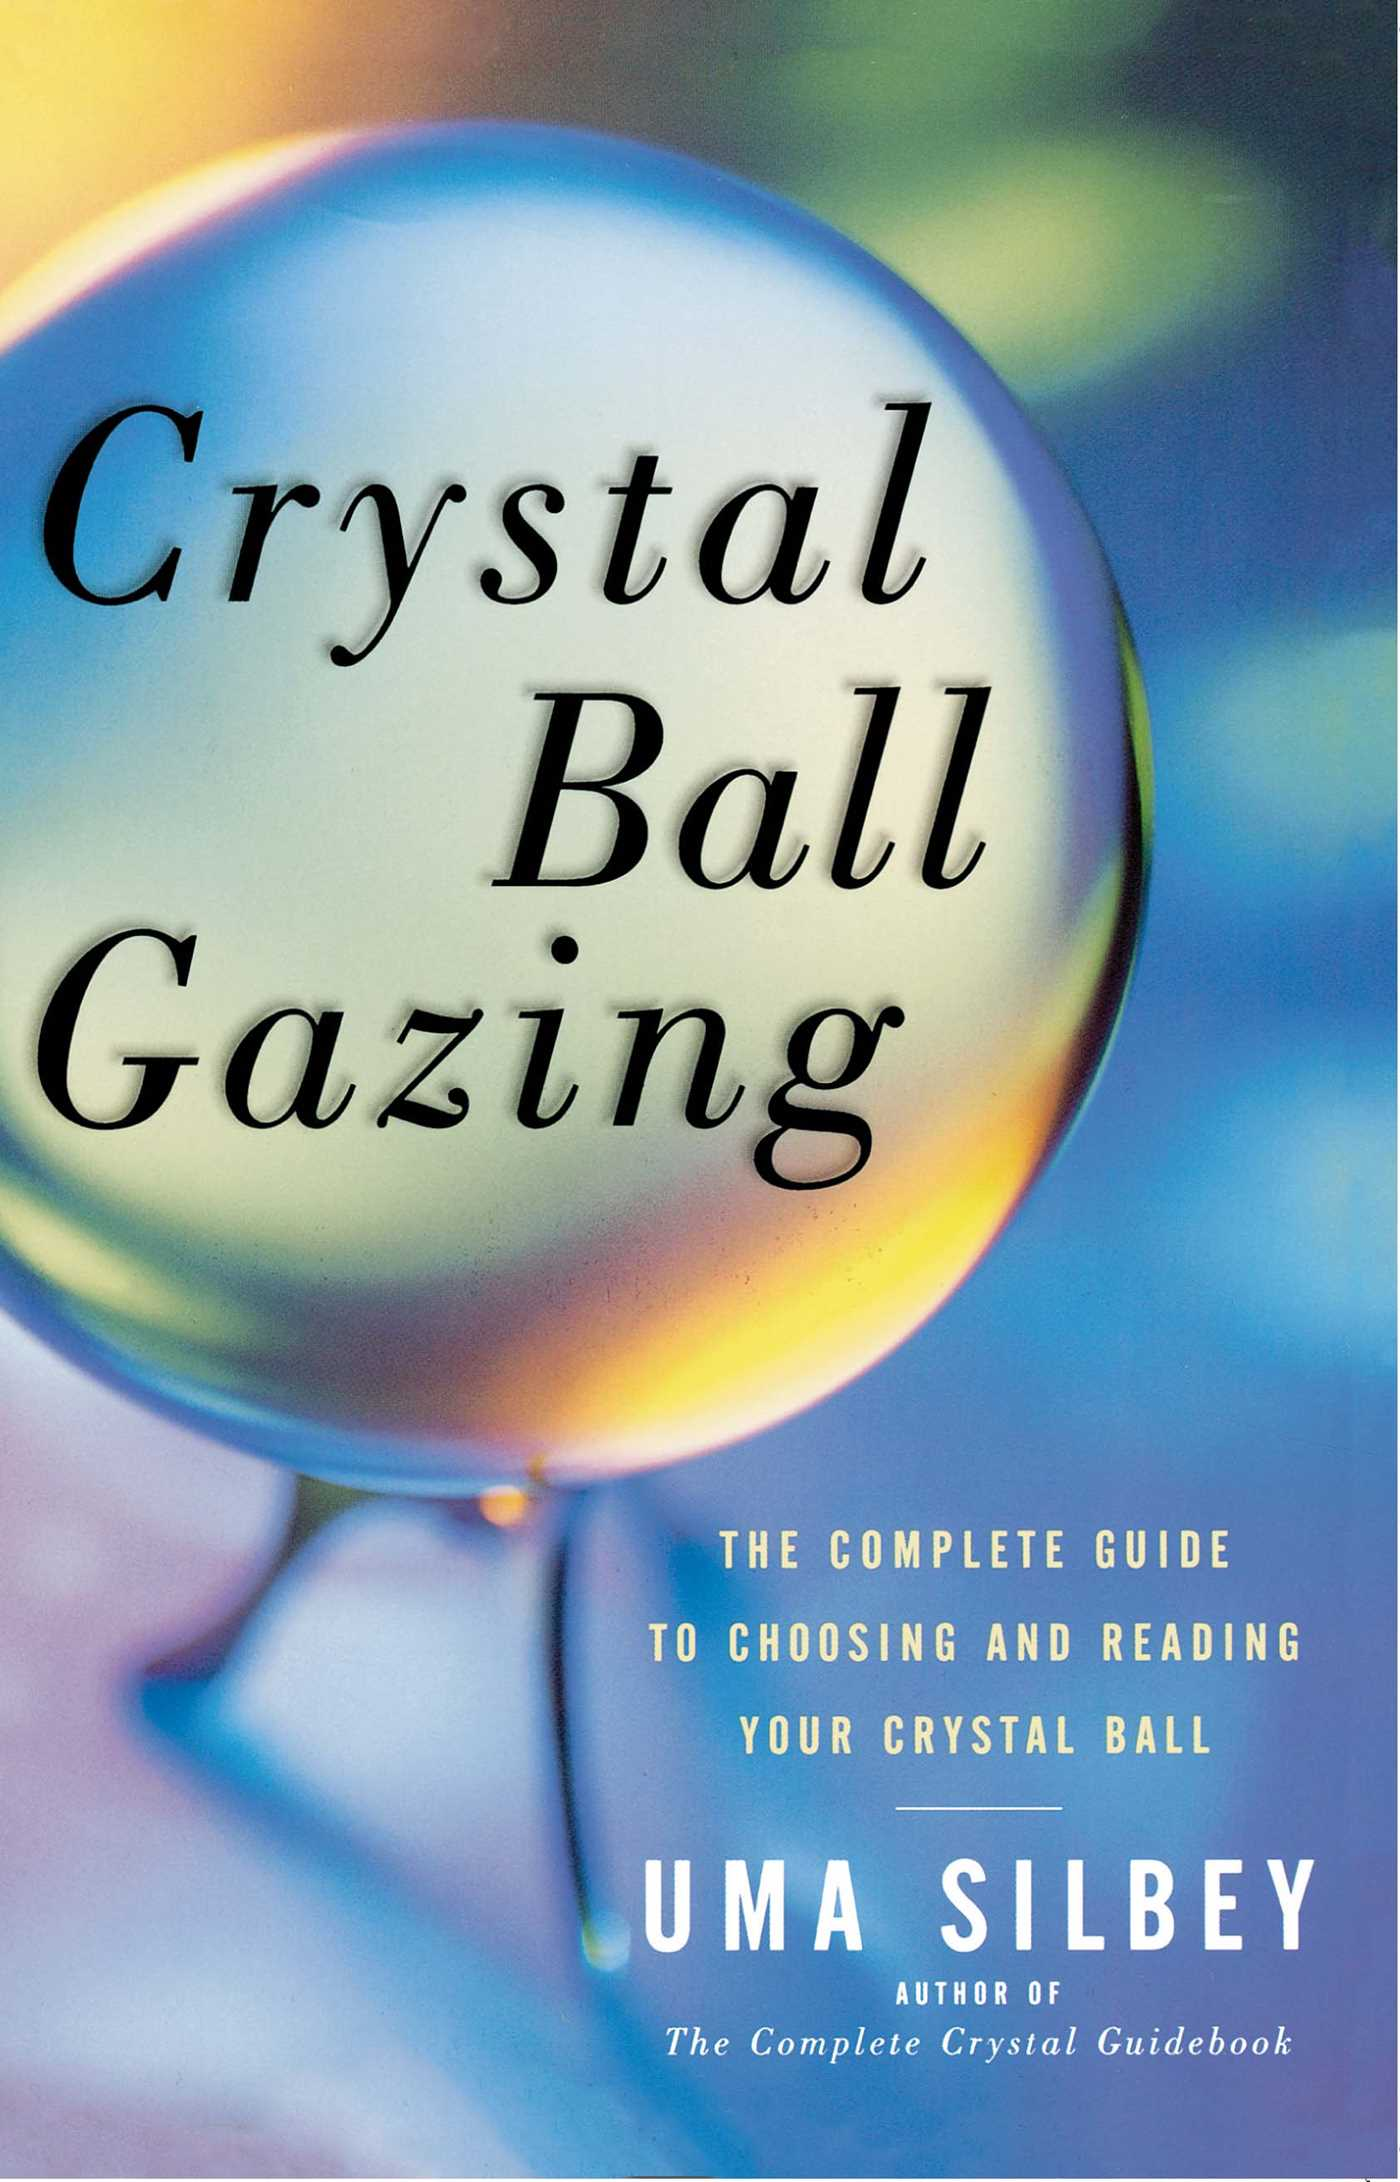 Crystal-ball-gazing-9780684836447_hr